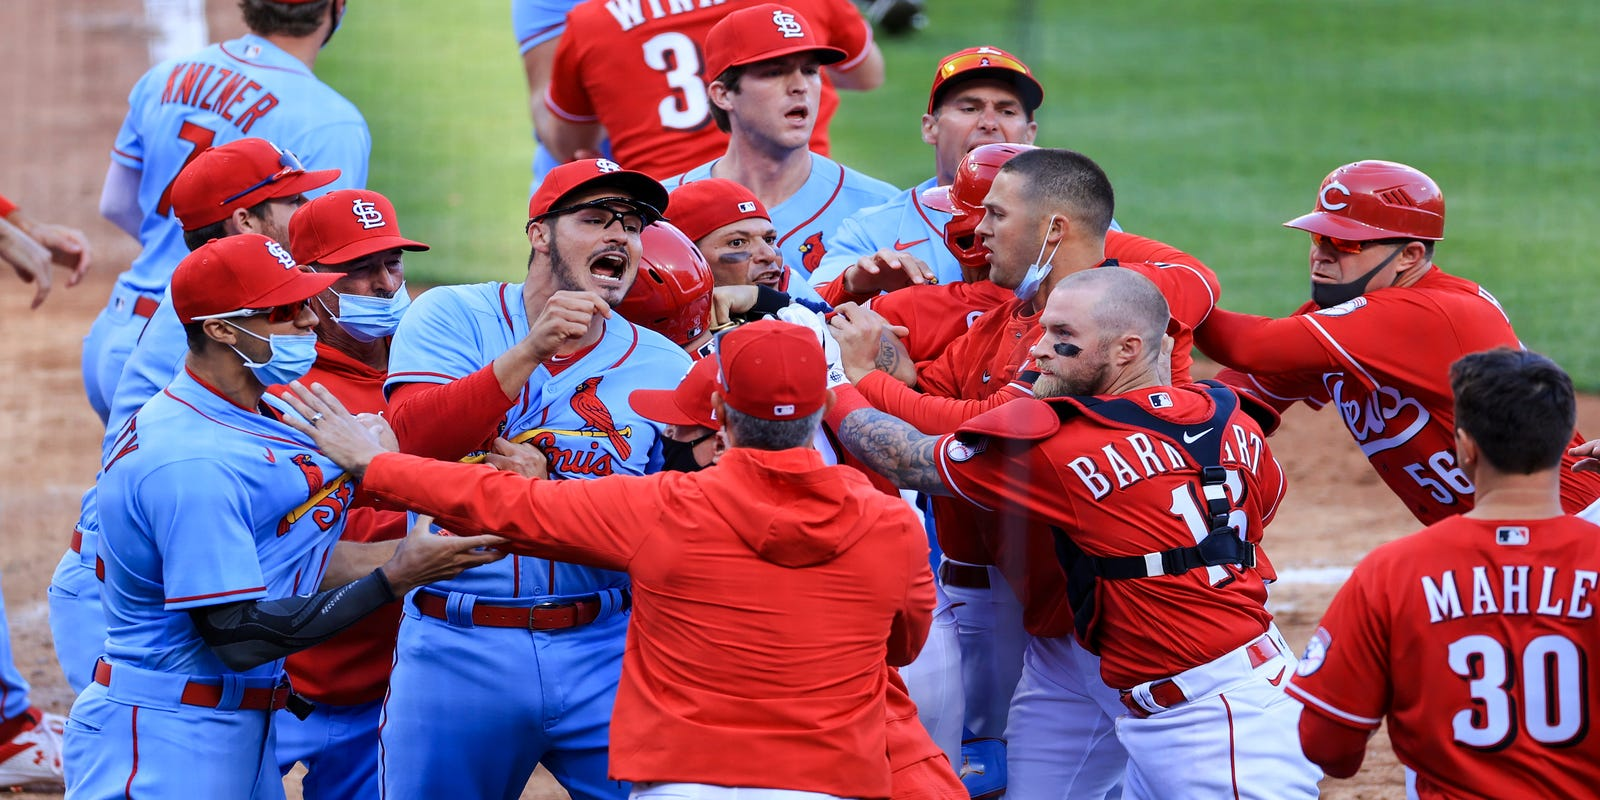 Cardinals-Reds brawl: Benches clear, Nick Castellanos ejected